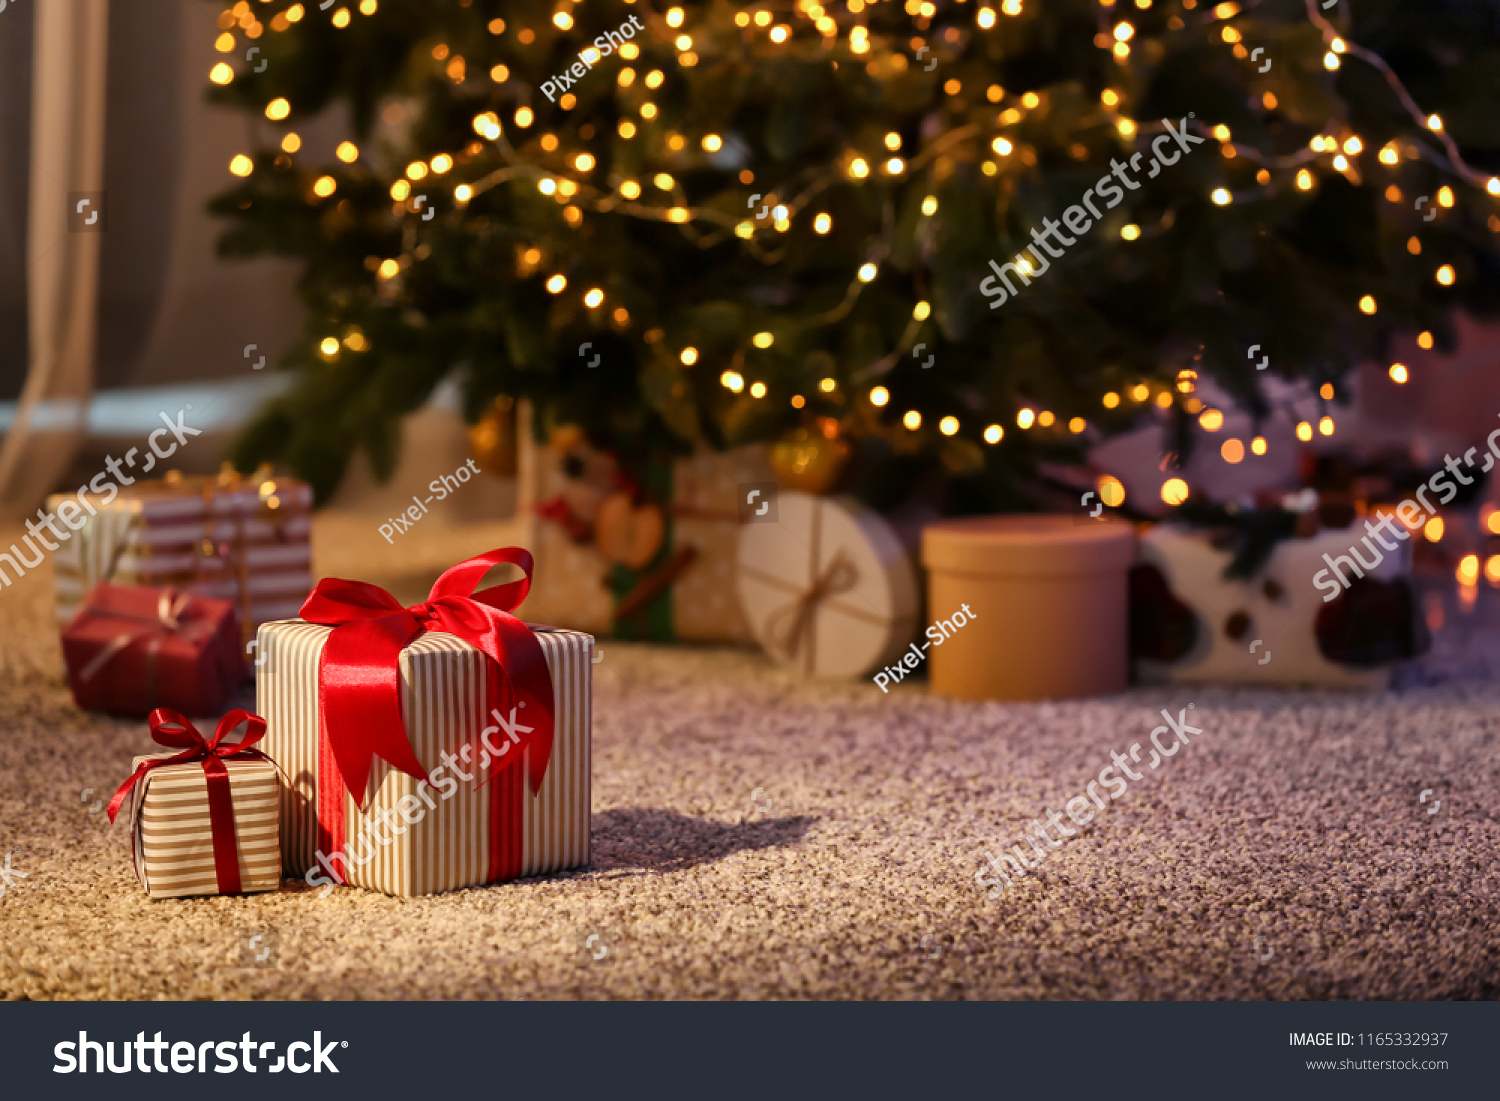 Beautiful Christmas gift boxes on floor near fir tree in room #1165332937